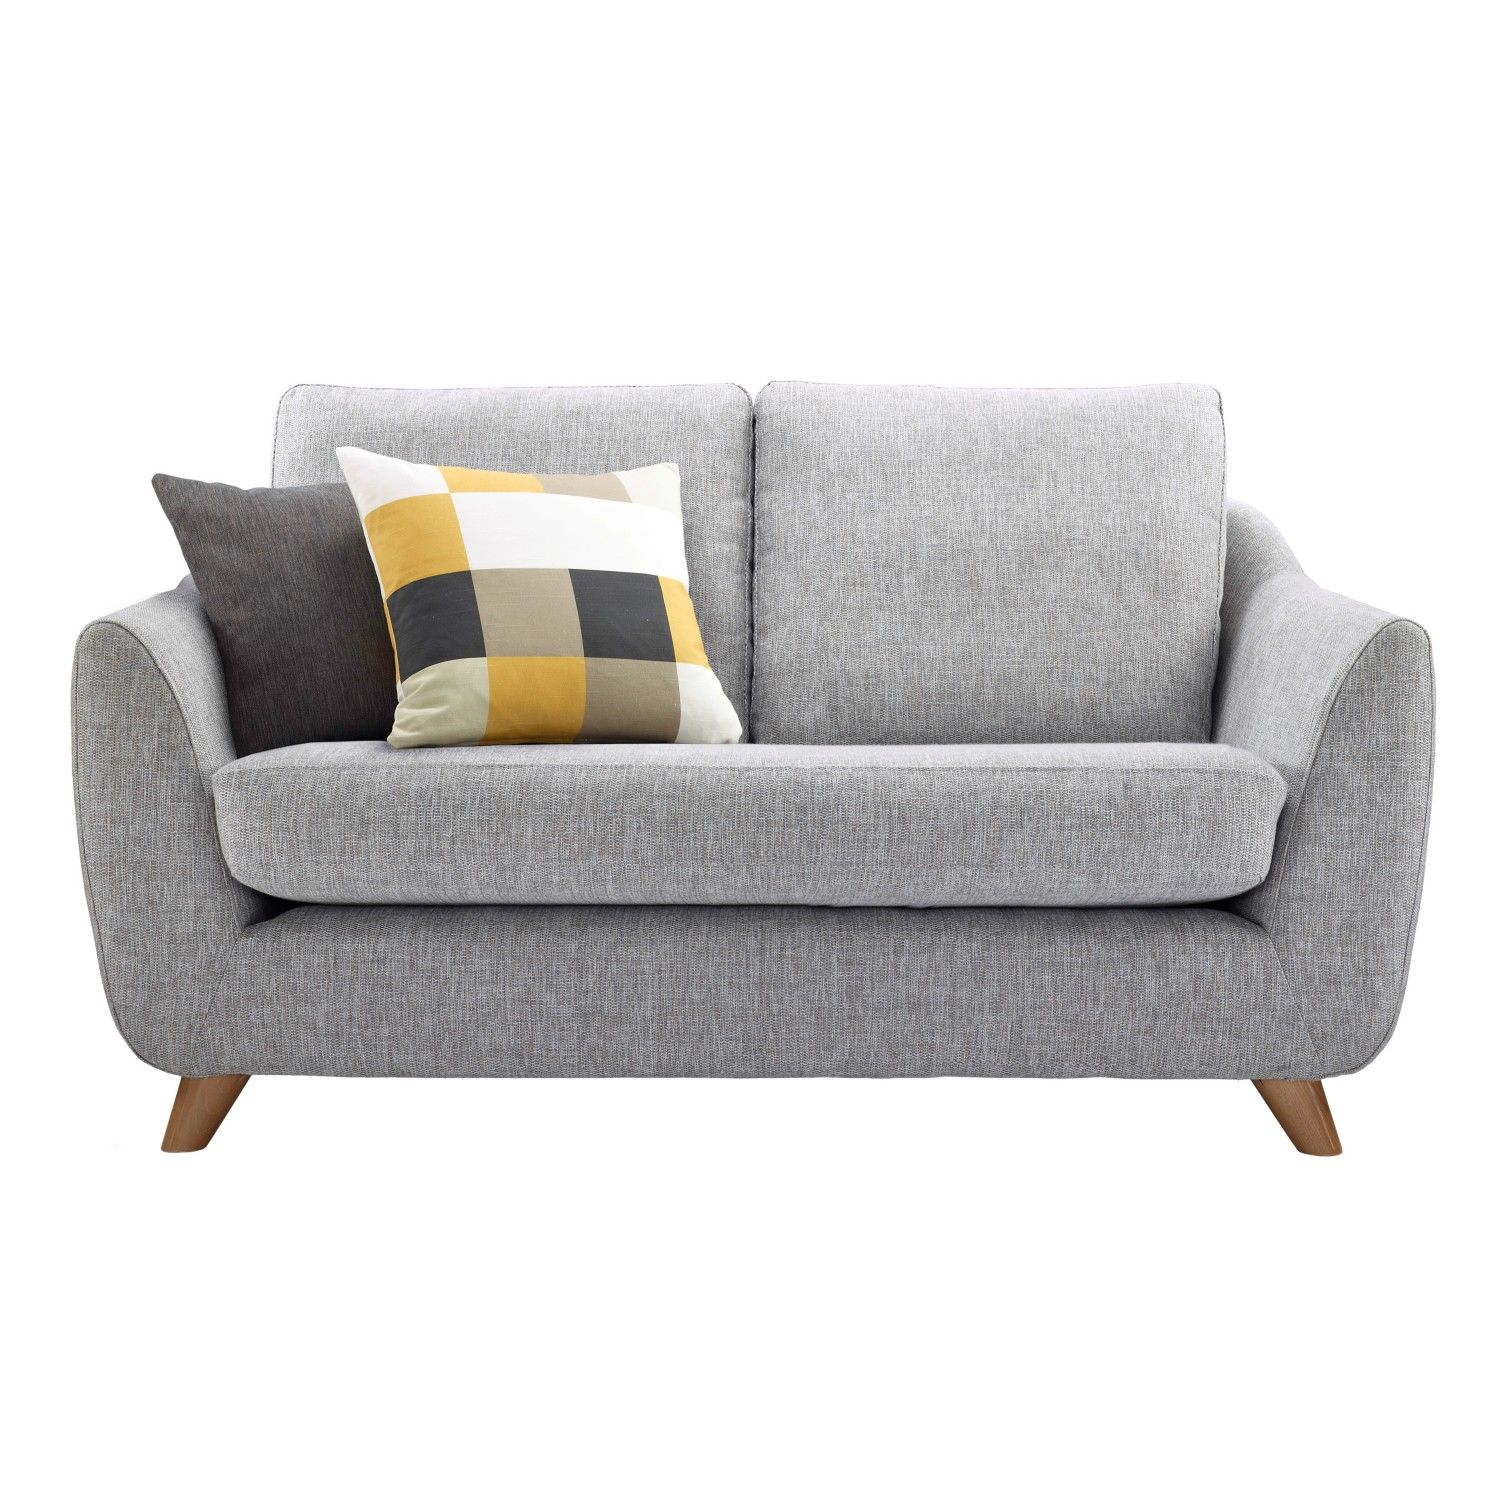 Buy G Plan Vintage The Sixty Seven Small Sofa, Marl Grey from our Sofas & Sofa  Beds range at John Lewis.